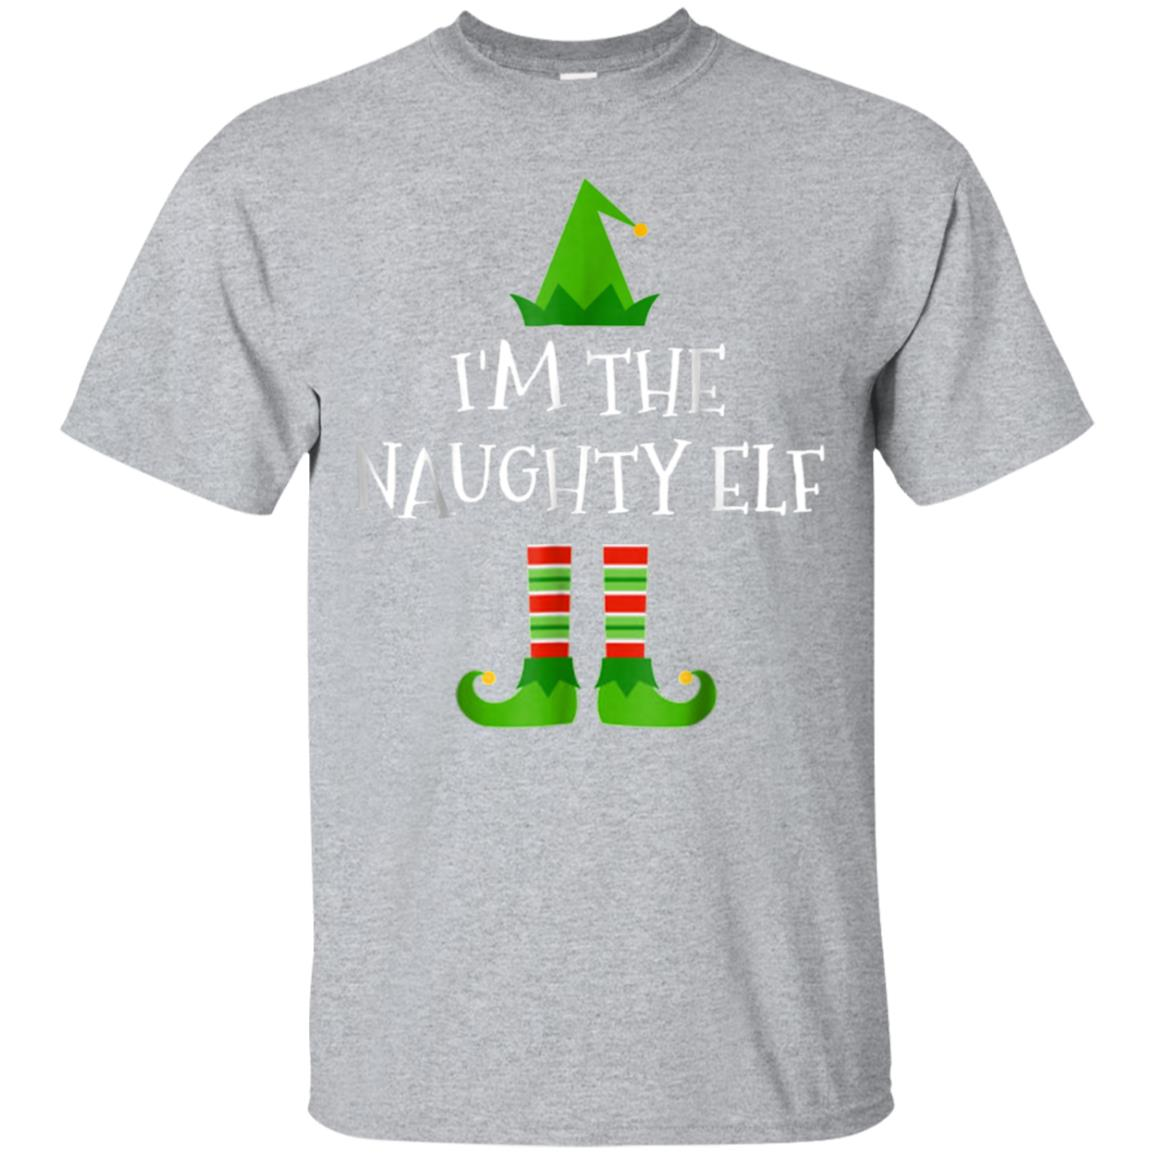 I'm The Naughty Elf Matching Family Group Christmas T Shirt 99promocode